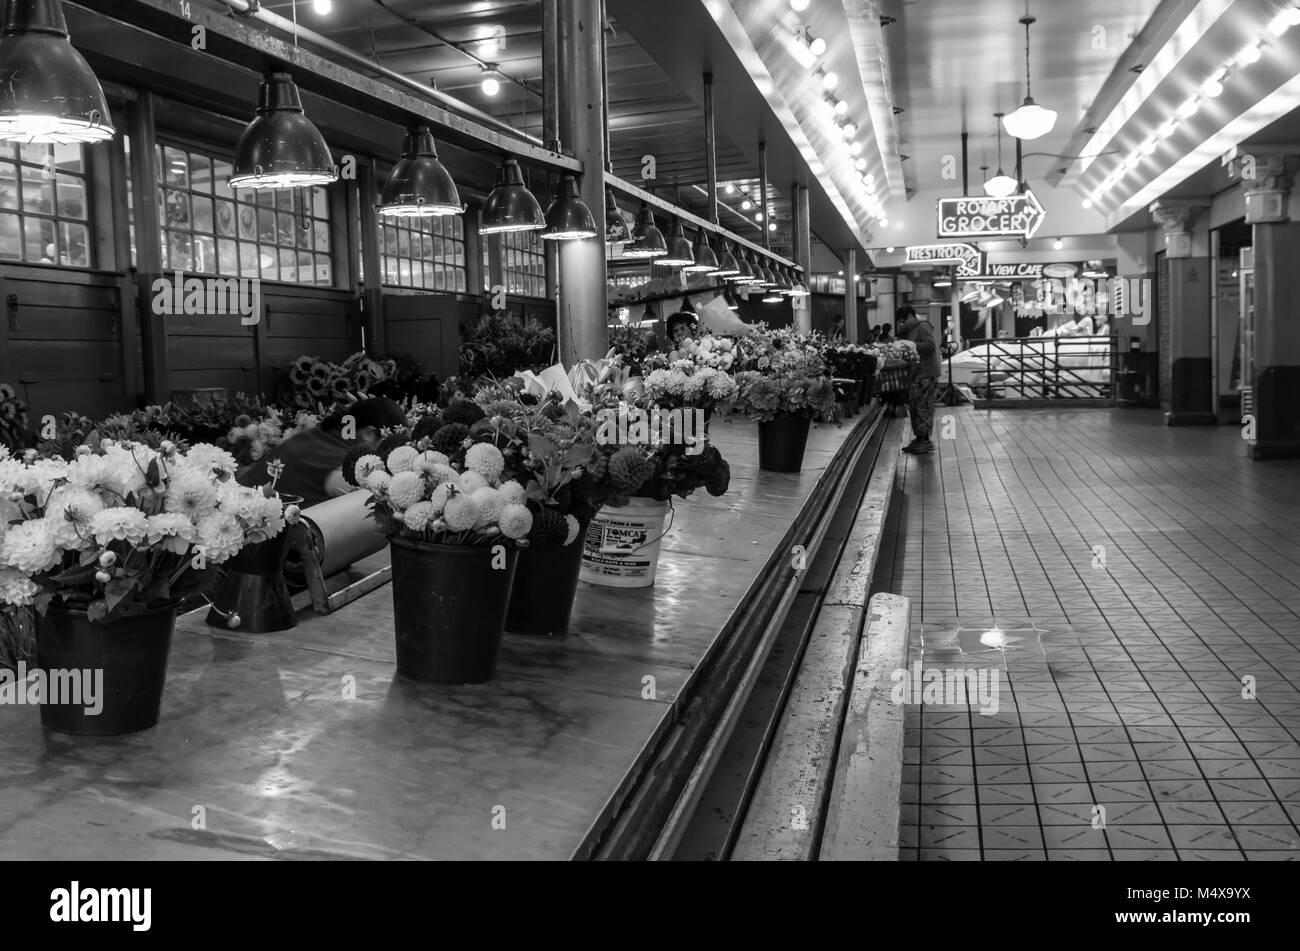 Empty flower seller stalls at Pike Place Market Seattle, Washington, USA - Stock Image